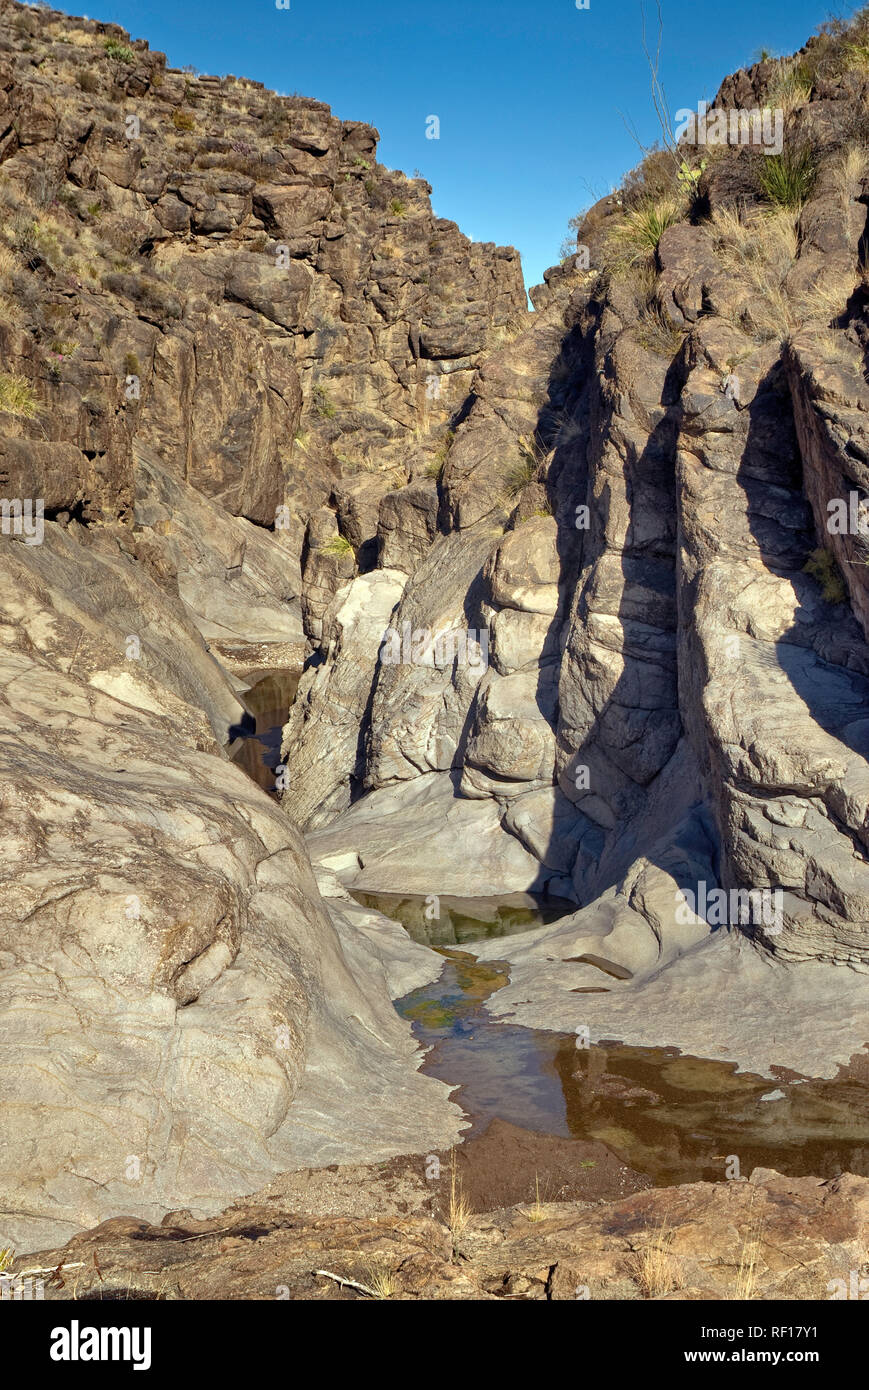 Water pools of Cinco Tinajas, Chihuahuan Desert, Big Bend Ranch State Park, Texas, USA - Stock Image